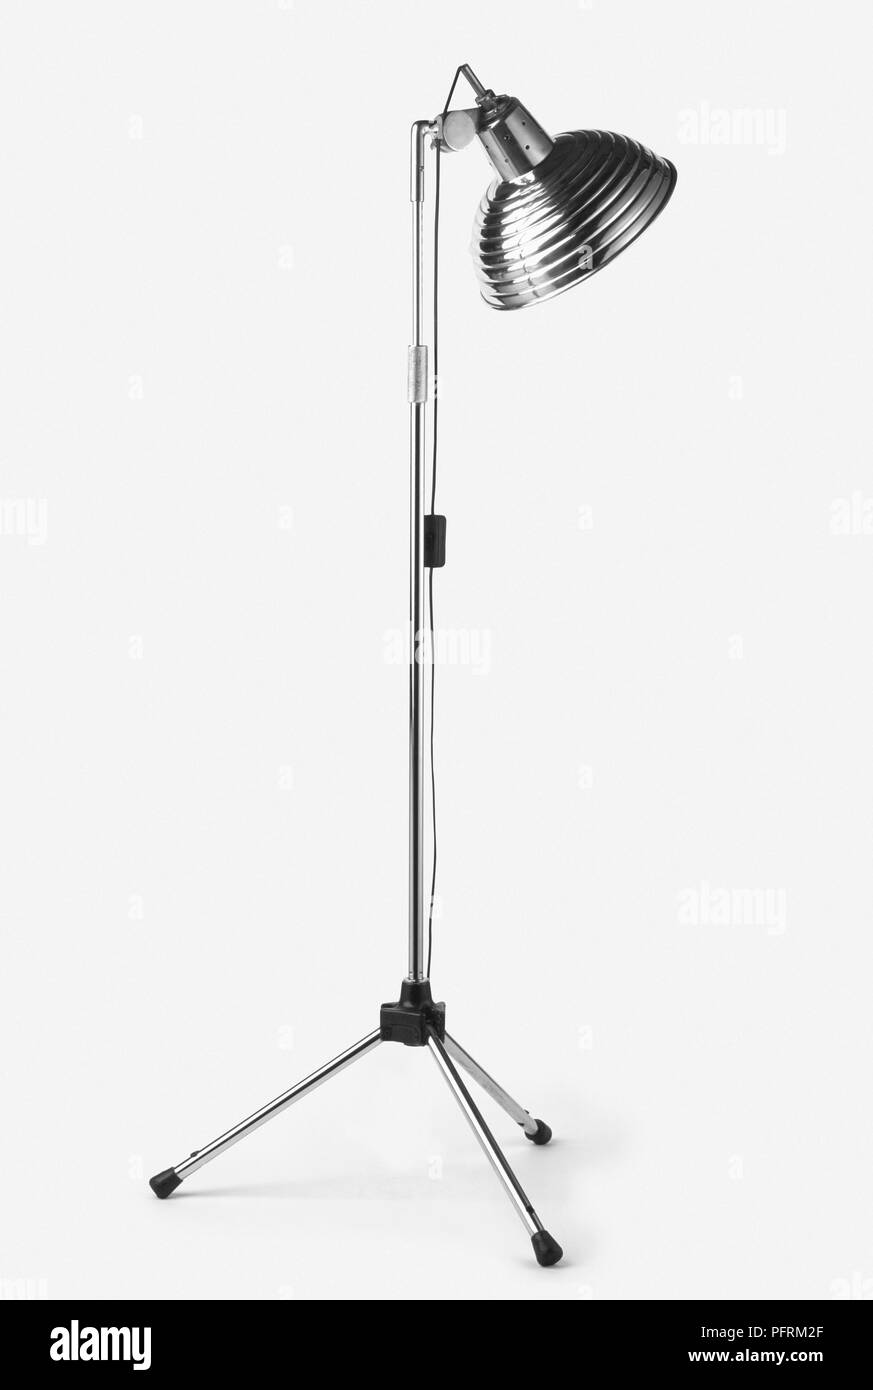 1930s-style lamp on metal stand - Stock Image